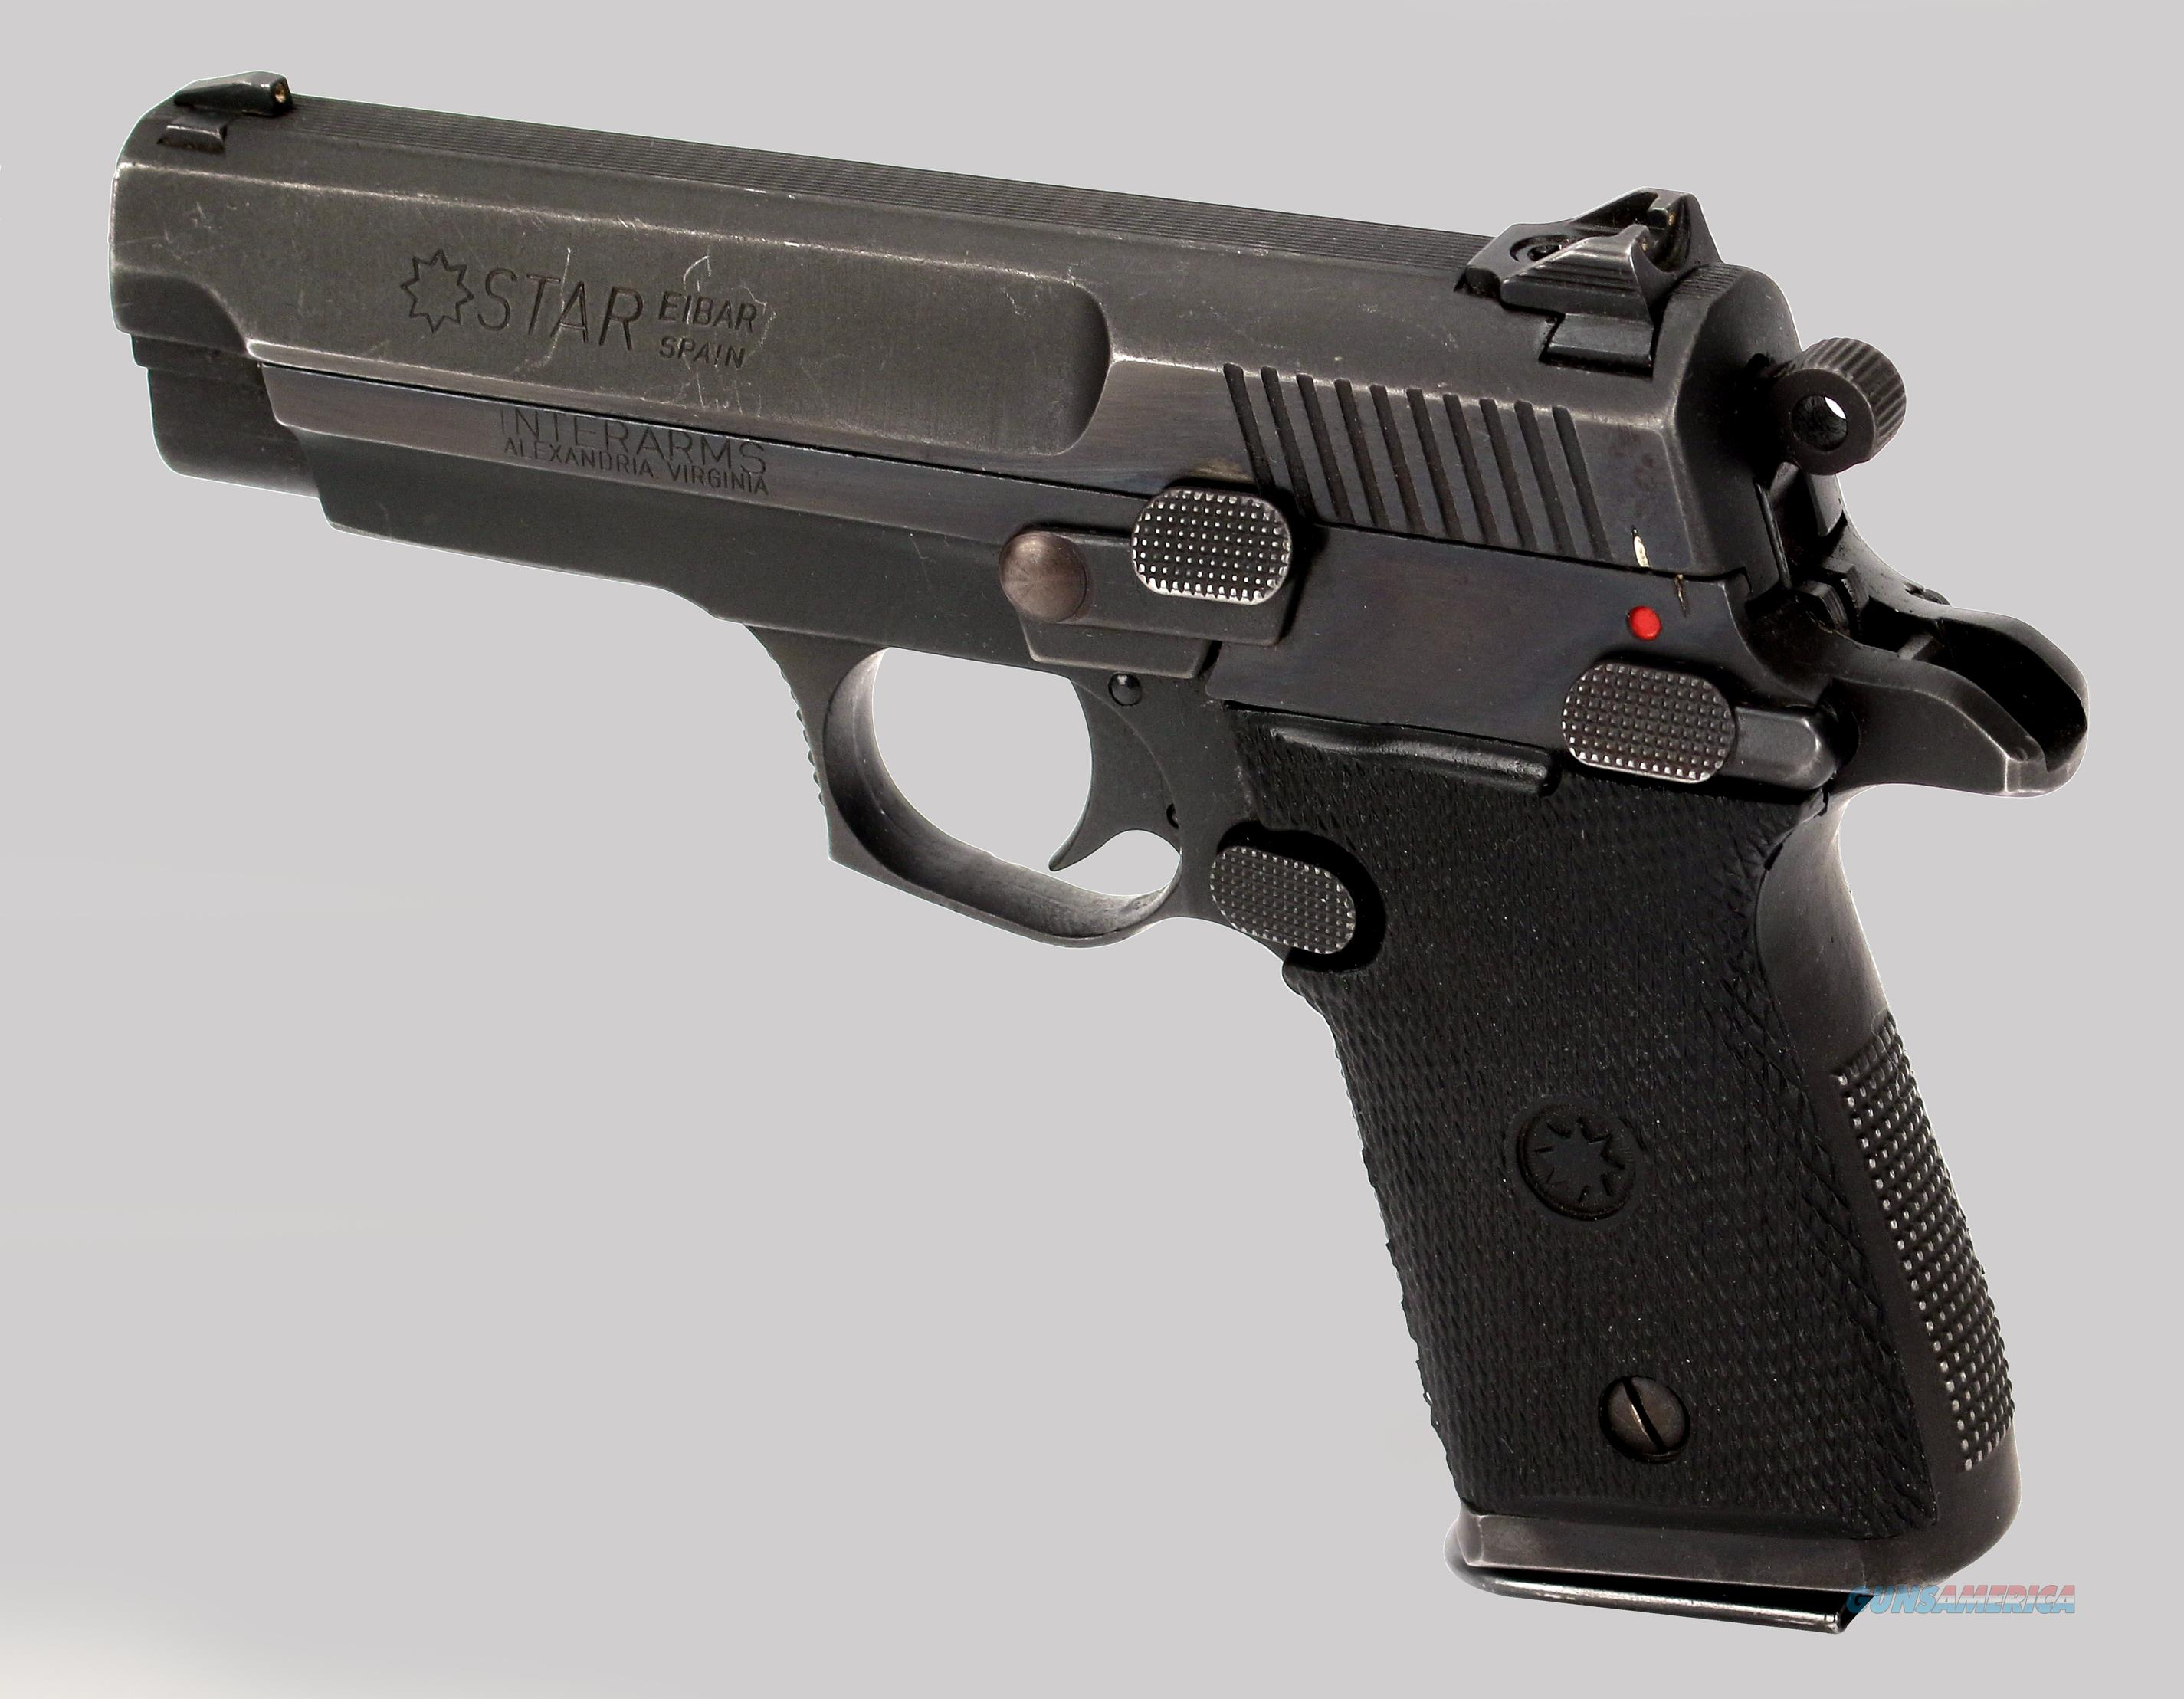 Star Firestar 9mm Pistol  Guns > Pistols > Star Pistols